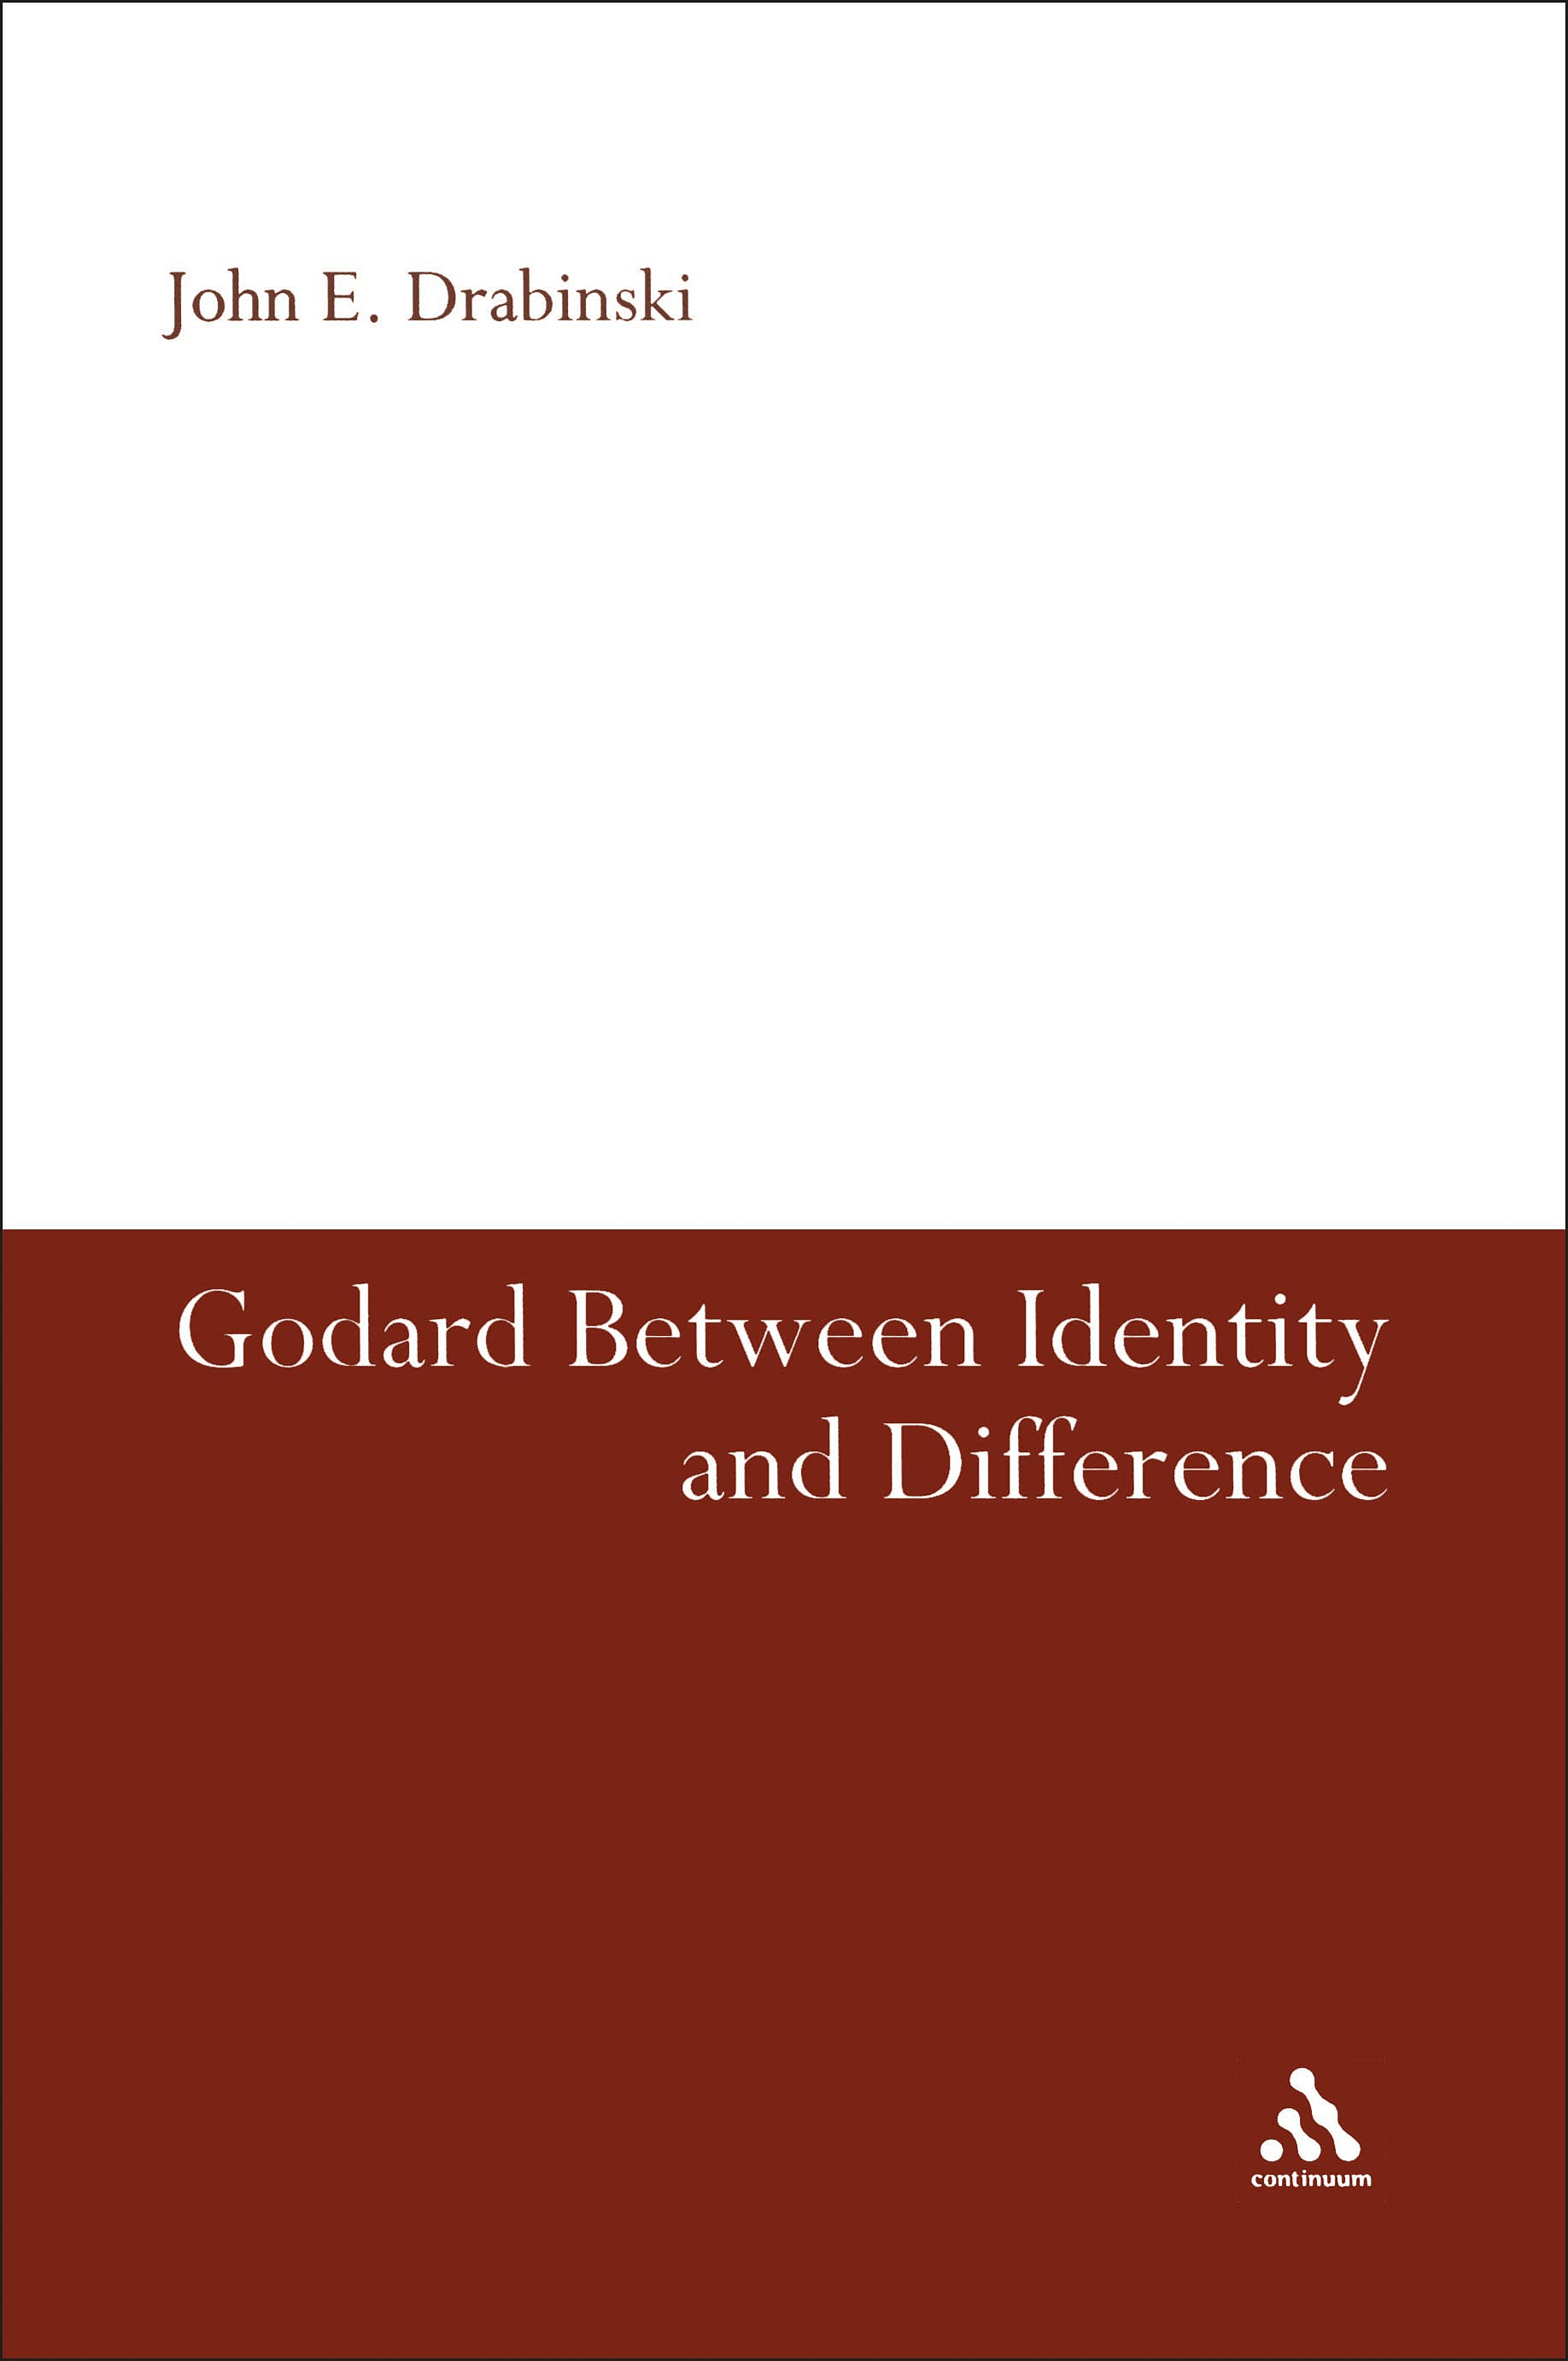 Godard Between Identity and Difference